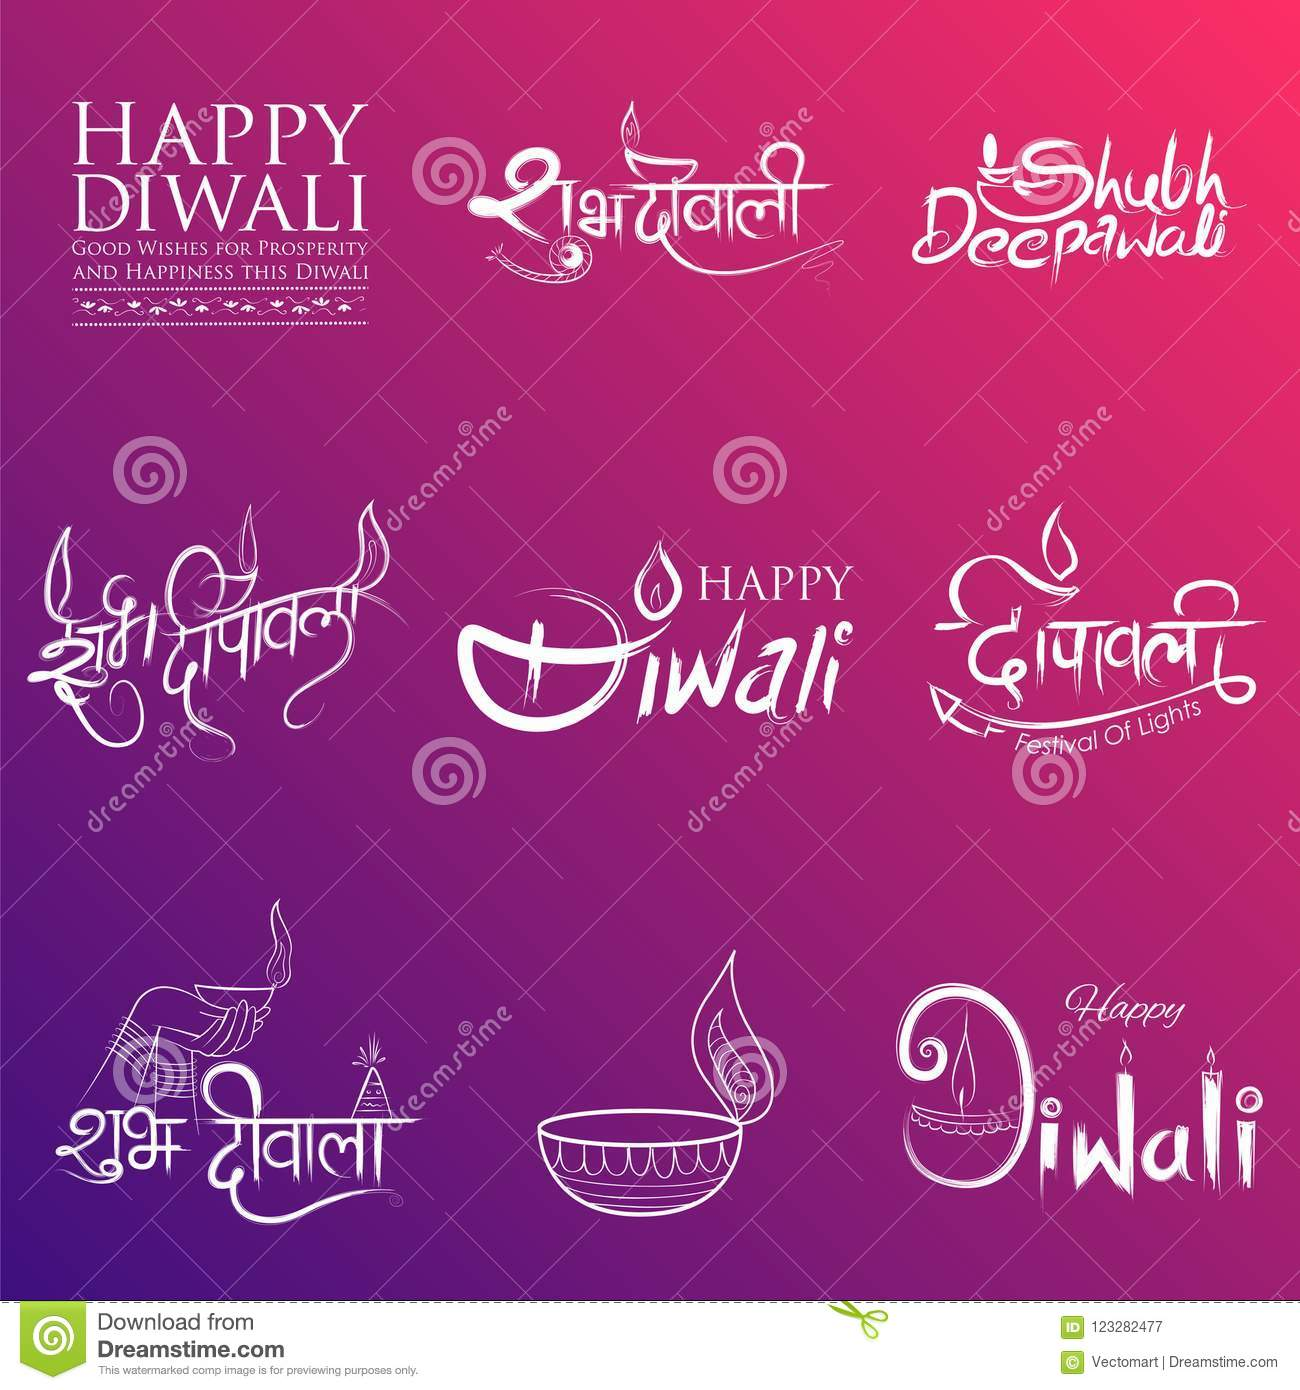 Typography calligraphy on diwali holiday background for light illustration of typography calligraphy on diwali holiday background for light festival of india with message in hindi meaning greetings for happy dipawali m4hsunfo